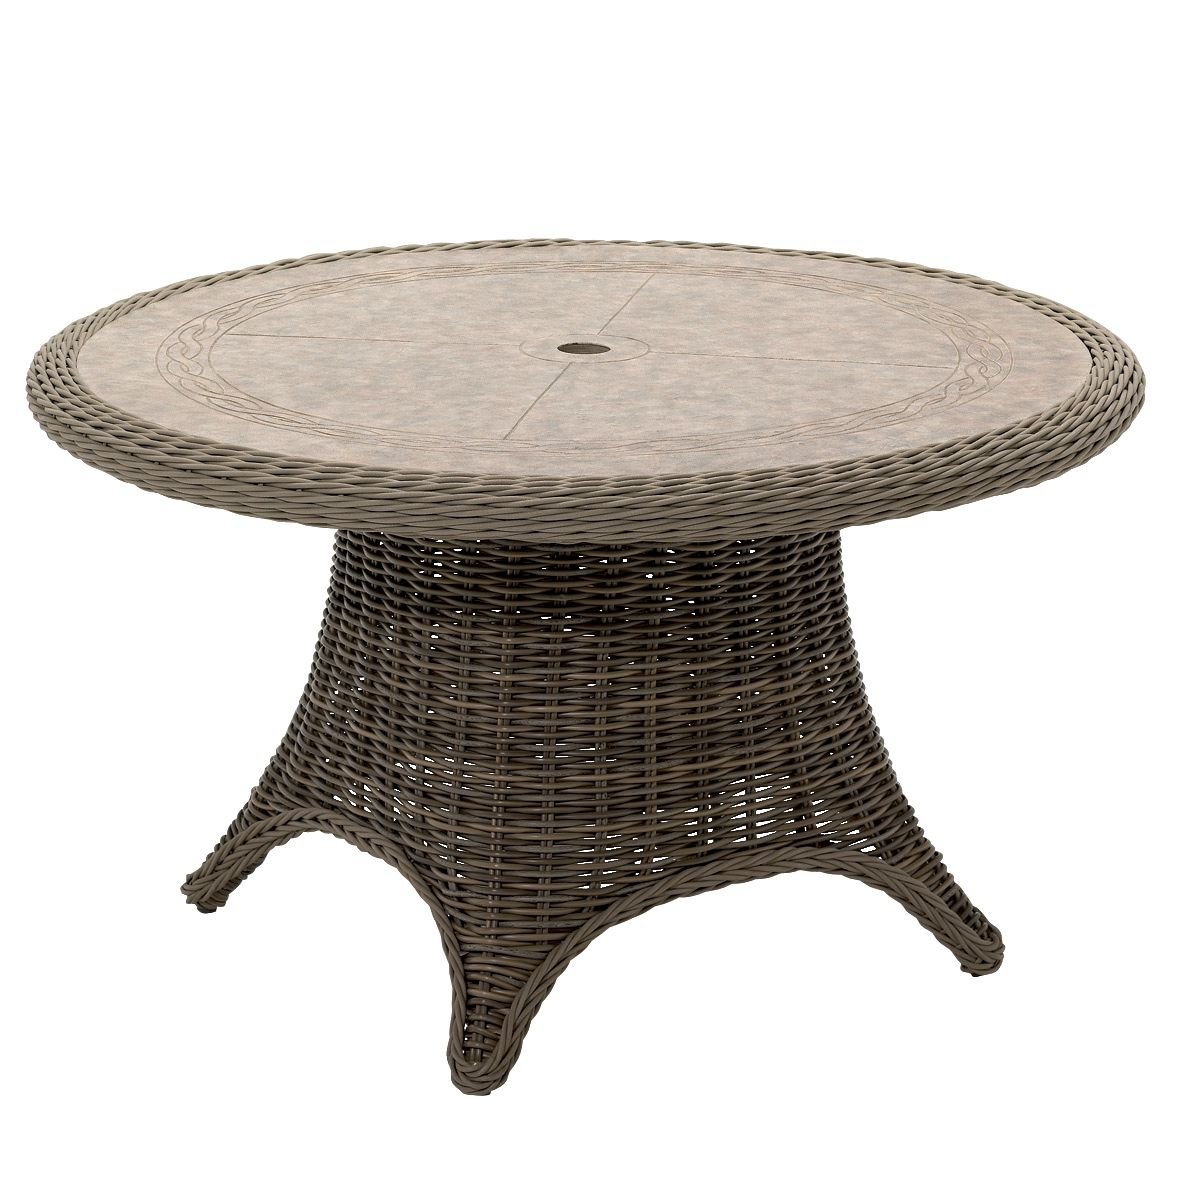 Gloster Havana Round Outdoor Table, Willow